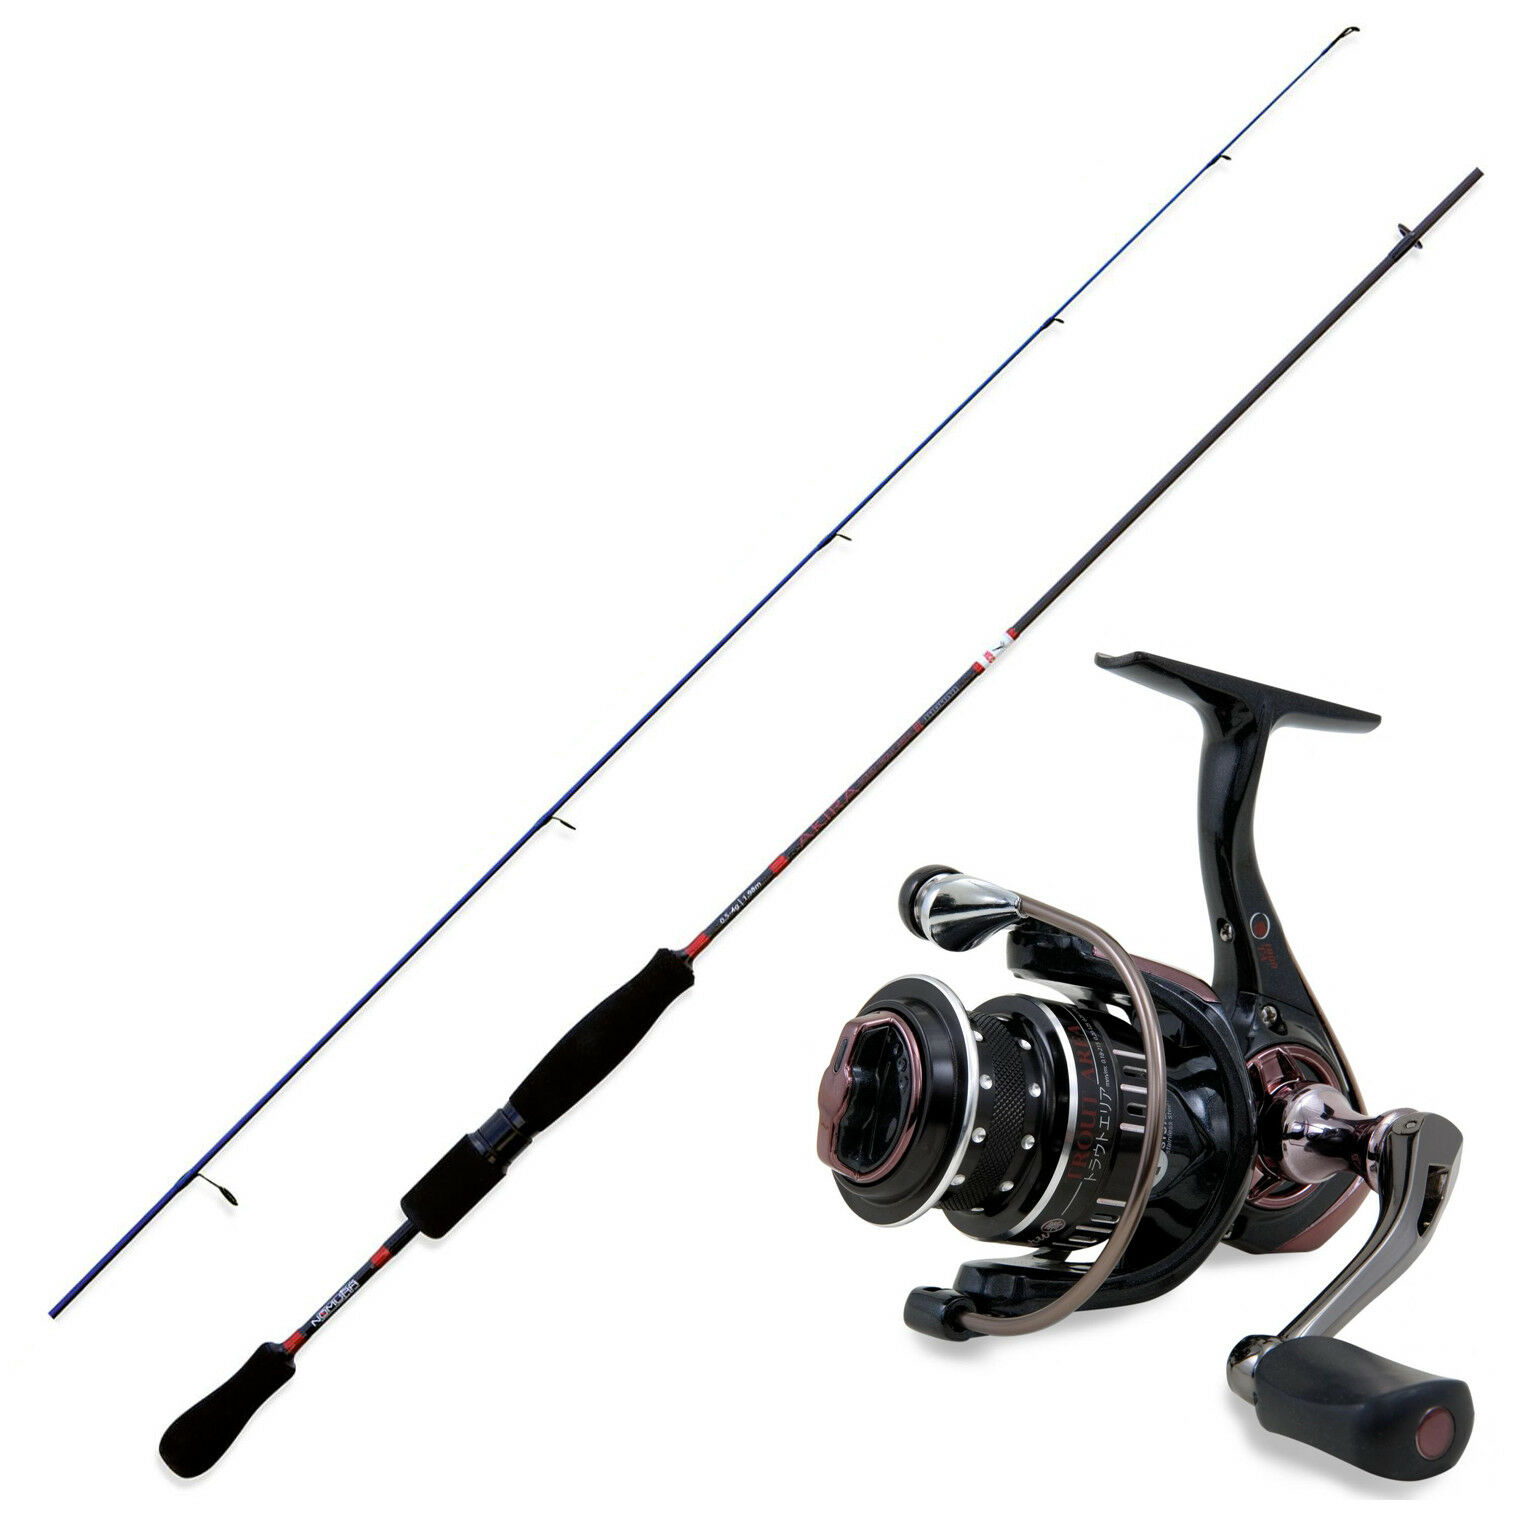 KP3574 Kit Pesca Trout Area Nomura Canna Akira Solid 1,70 m + Mulinello Har RNG